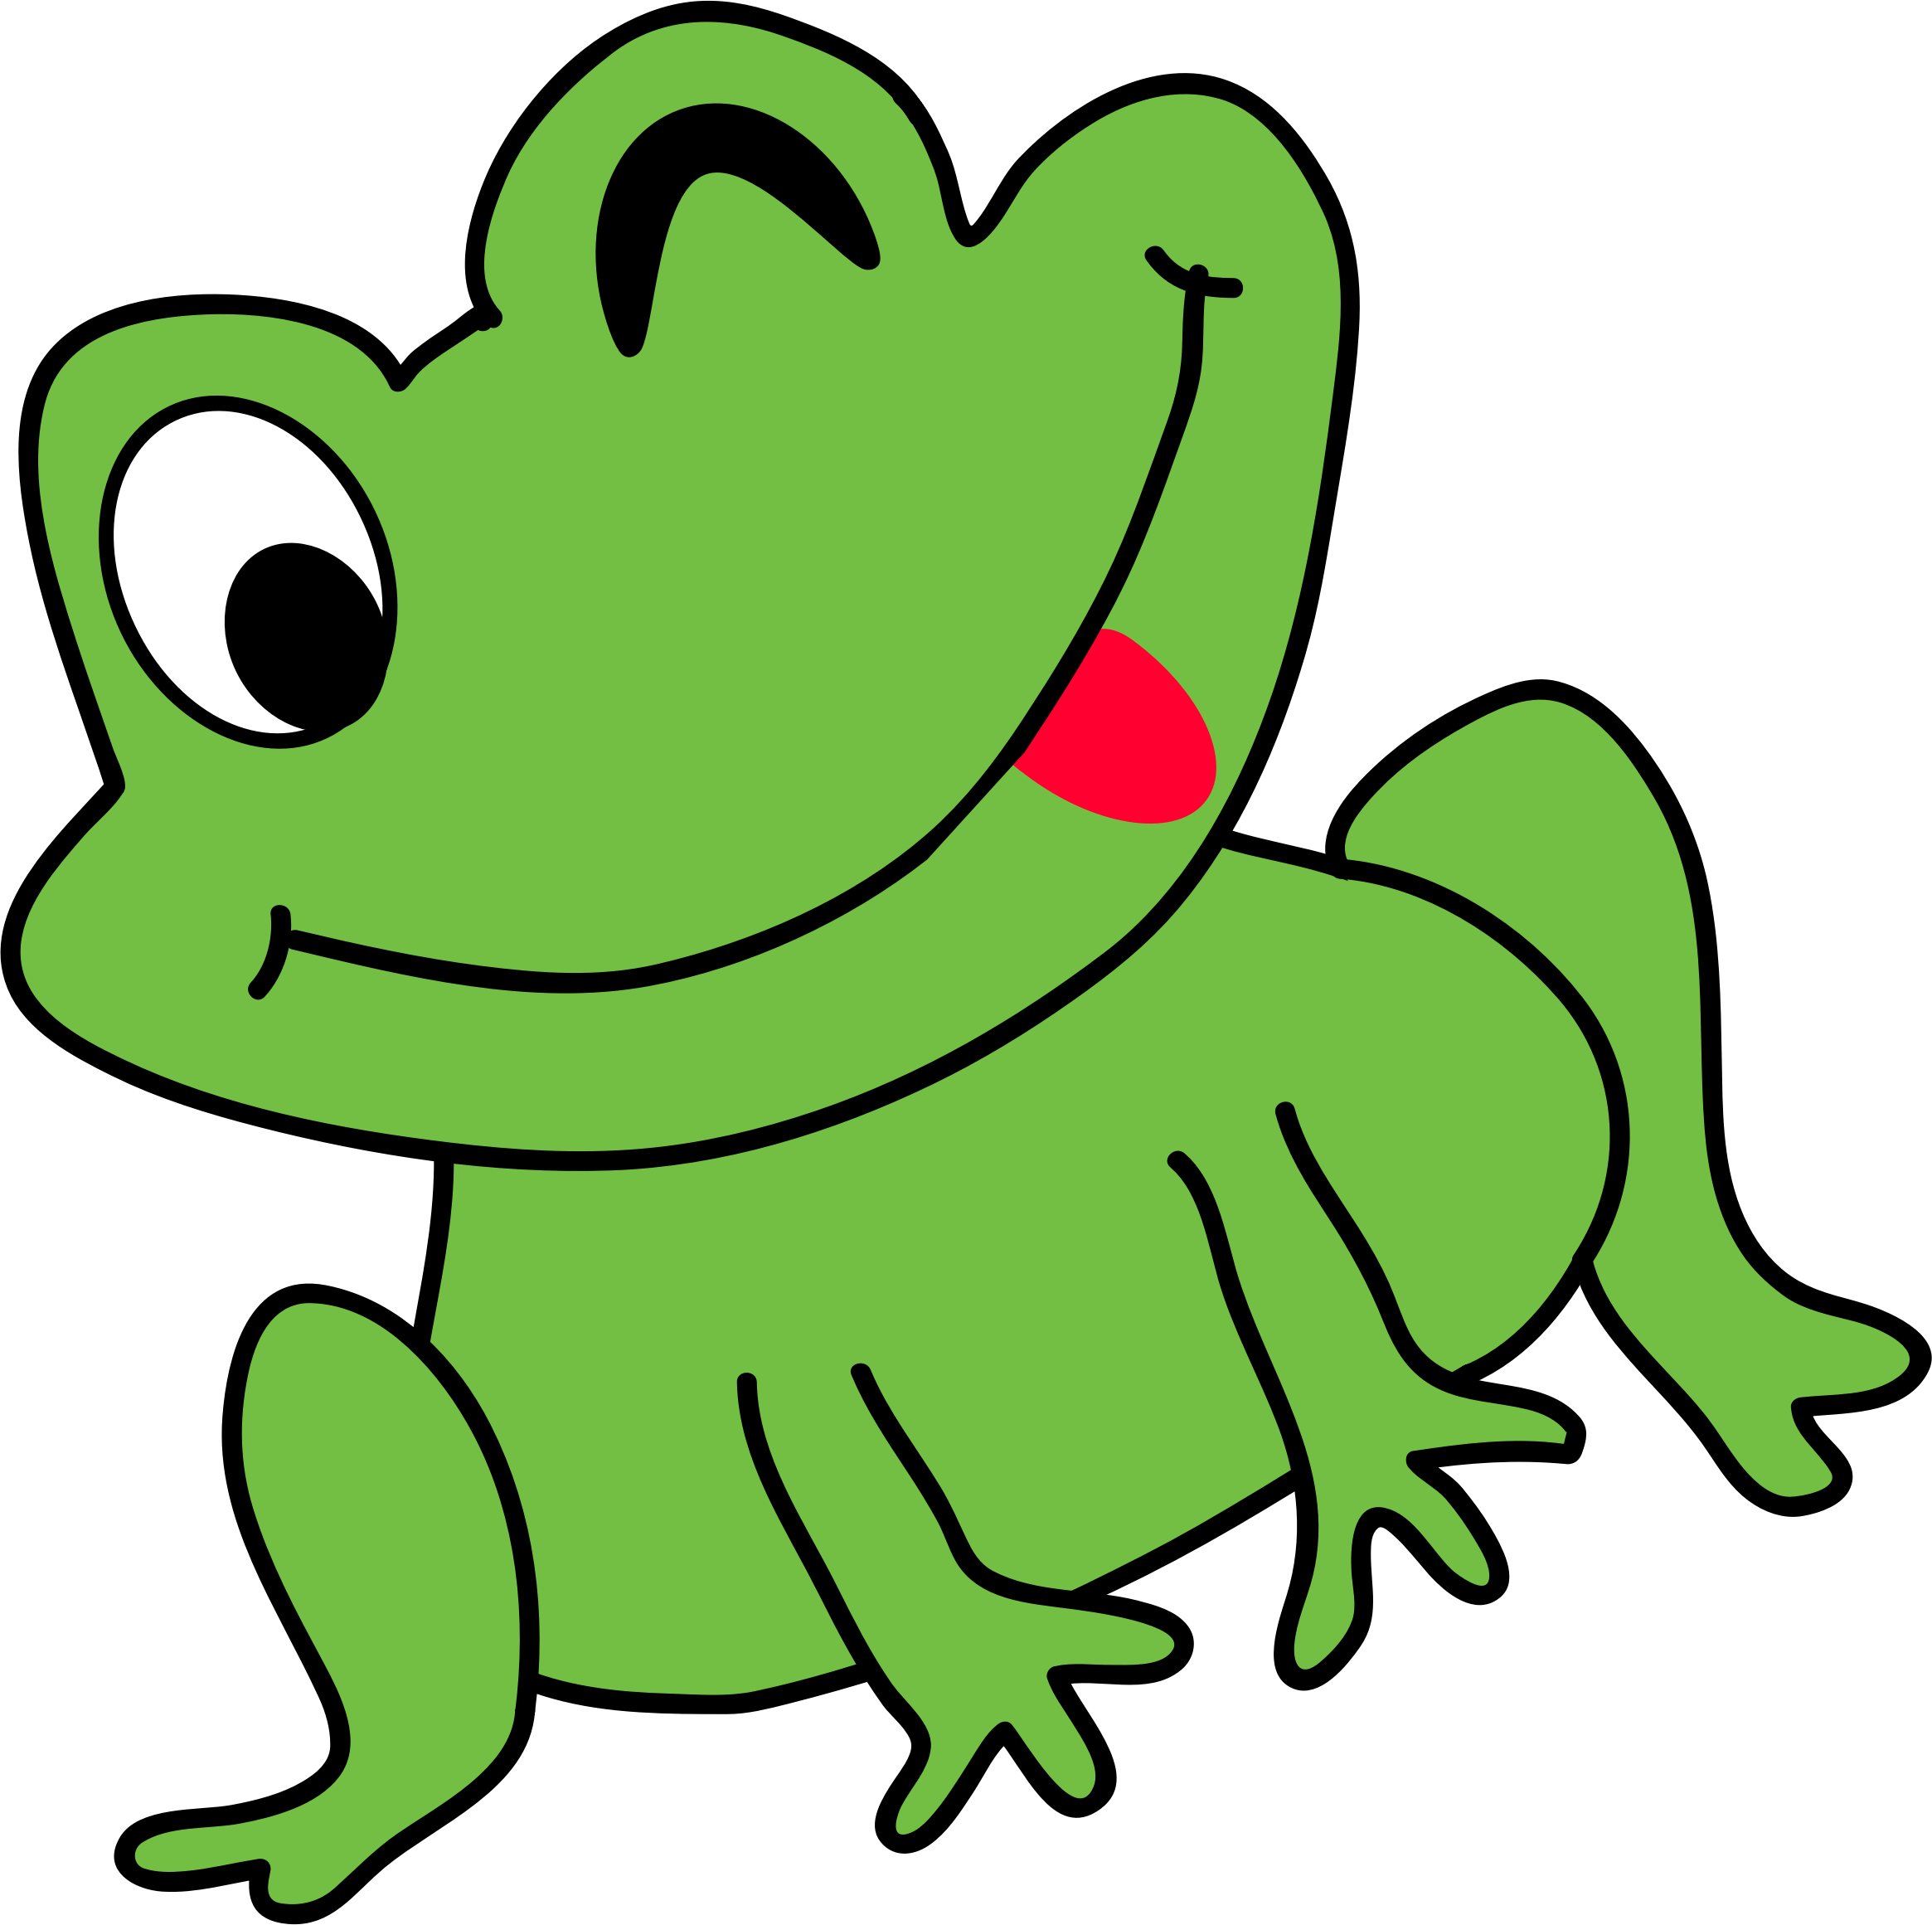 Holidays clipart frog, Holidays frog Transparent FREE for.